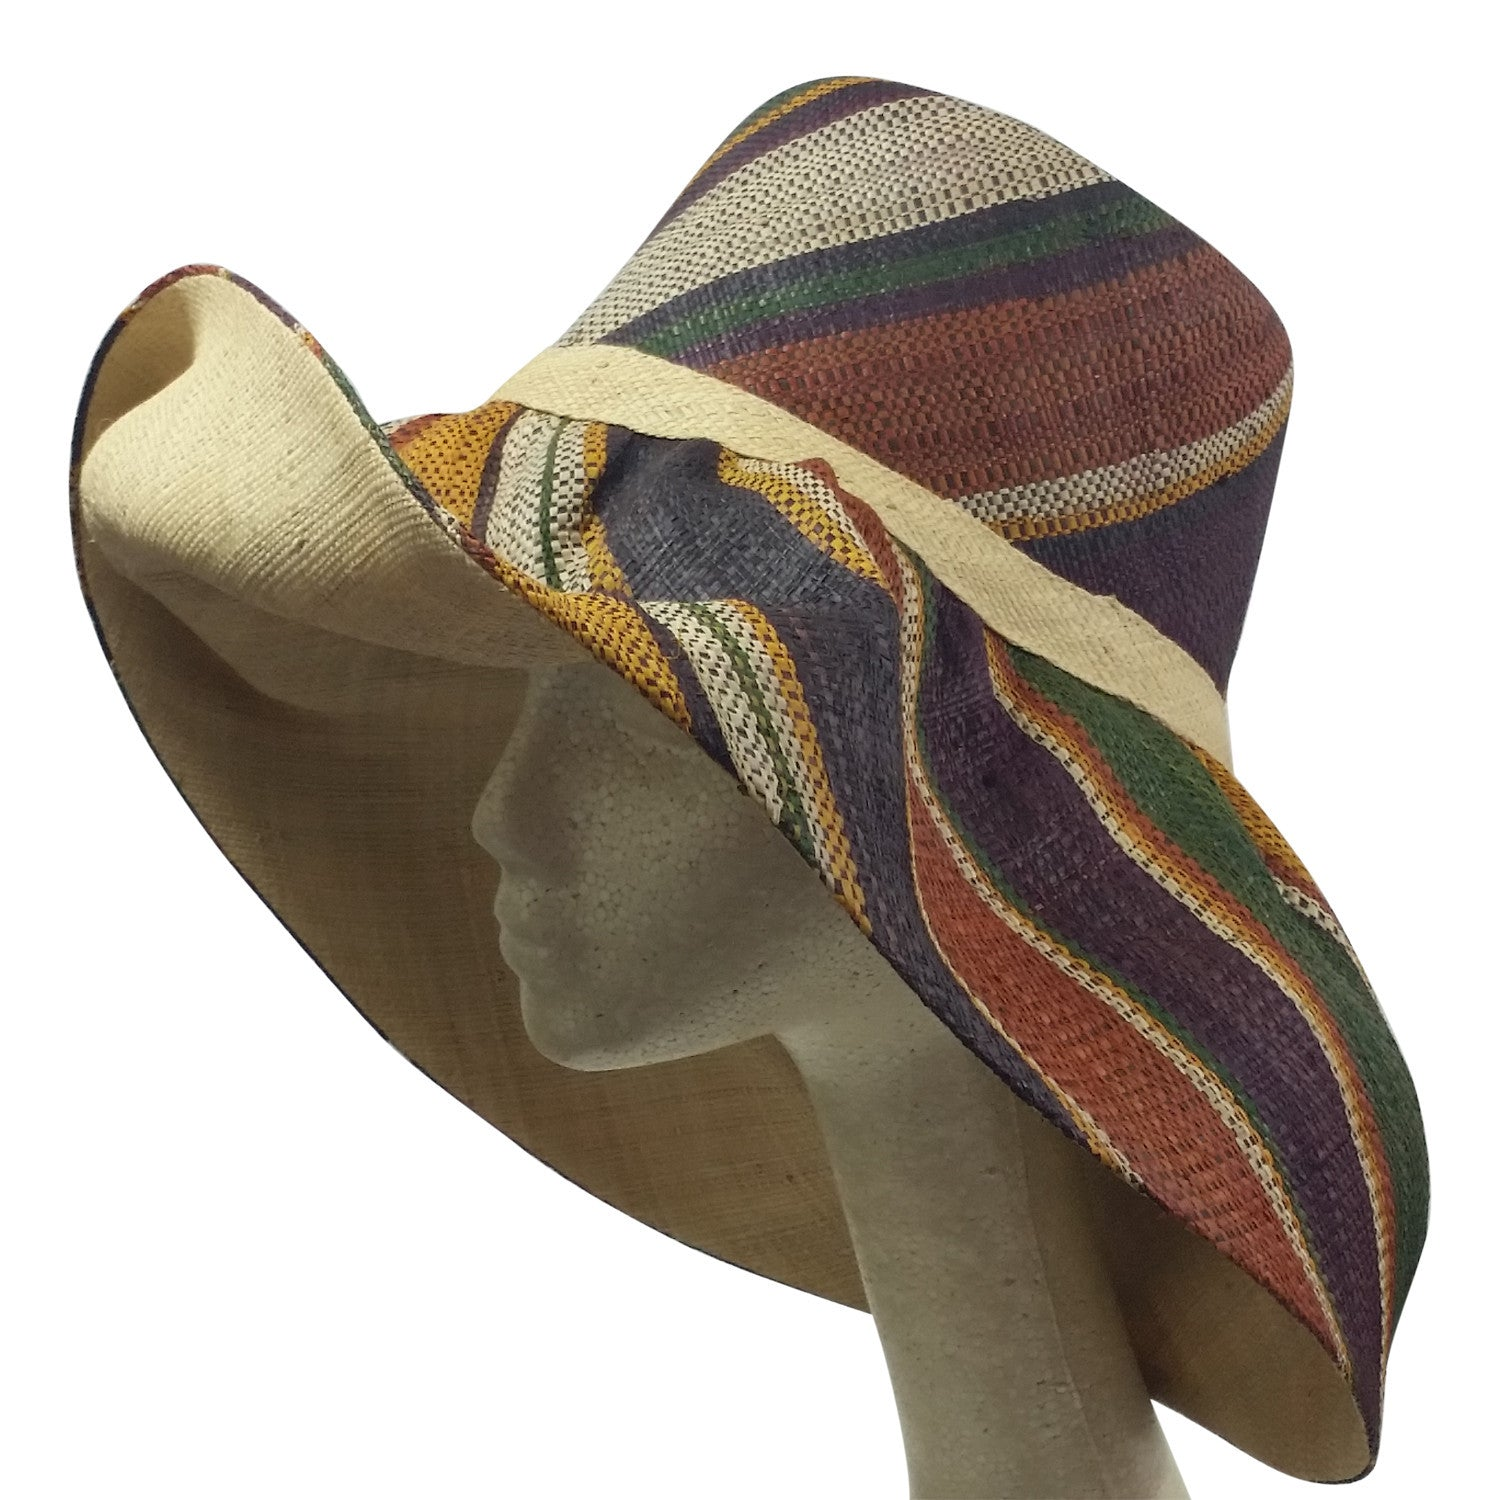 Chikere: Hand Made Big Brim Madagascar Raffia Sun Hat